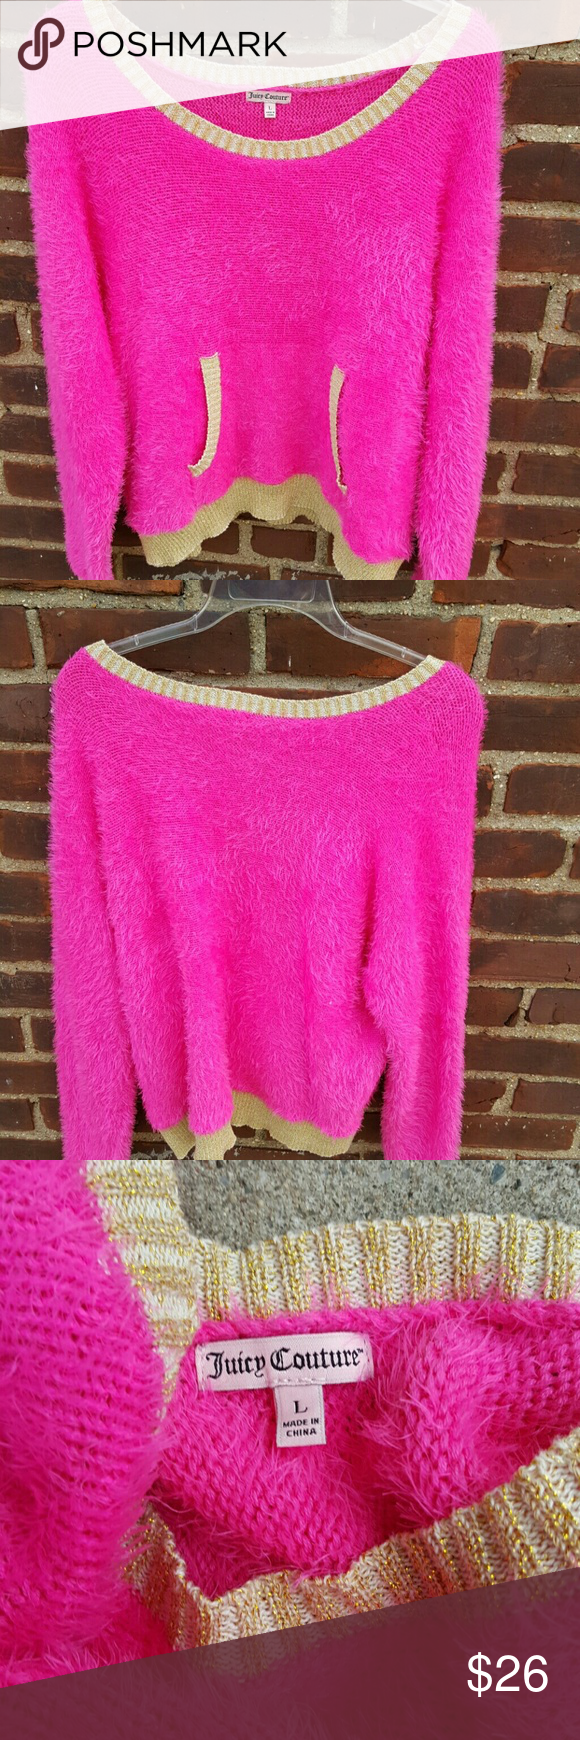 Fab Juicy Couture,sweater L Cutest darn sweater ever. Will definitely fit Loosely as it is 23 inches under the arms. This is meant to fit in the more loose fashion Juicy Couture Sweaters Crew & Scoop Necks